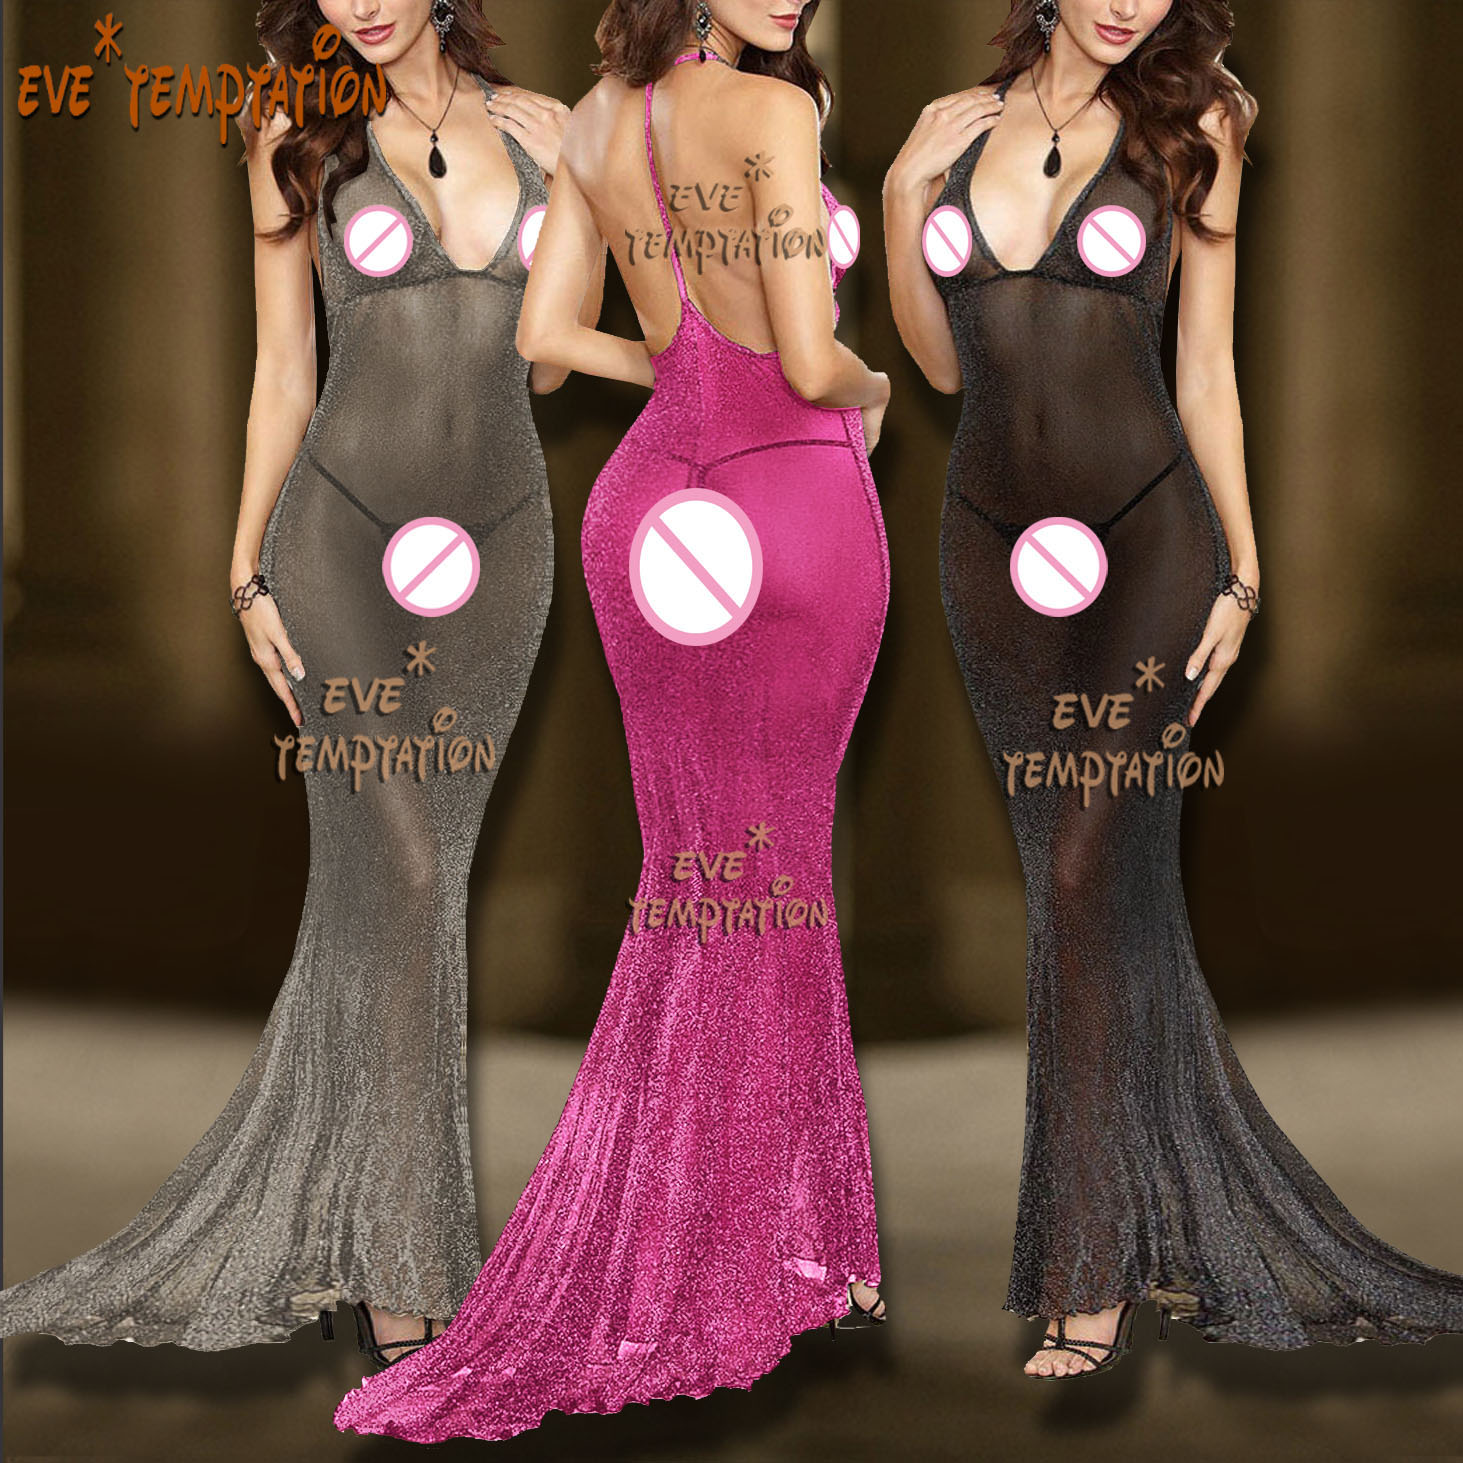 Sexy Babydolls glisten backless Lingerie Sheer Underwear Costume Dovetail dress baby doll dress Body stocking Underwear 6670